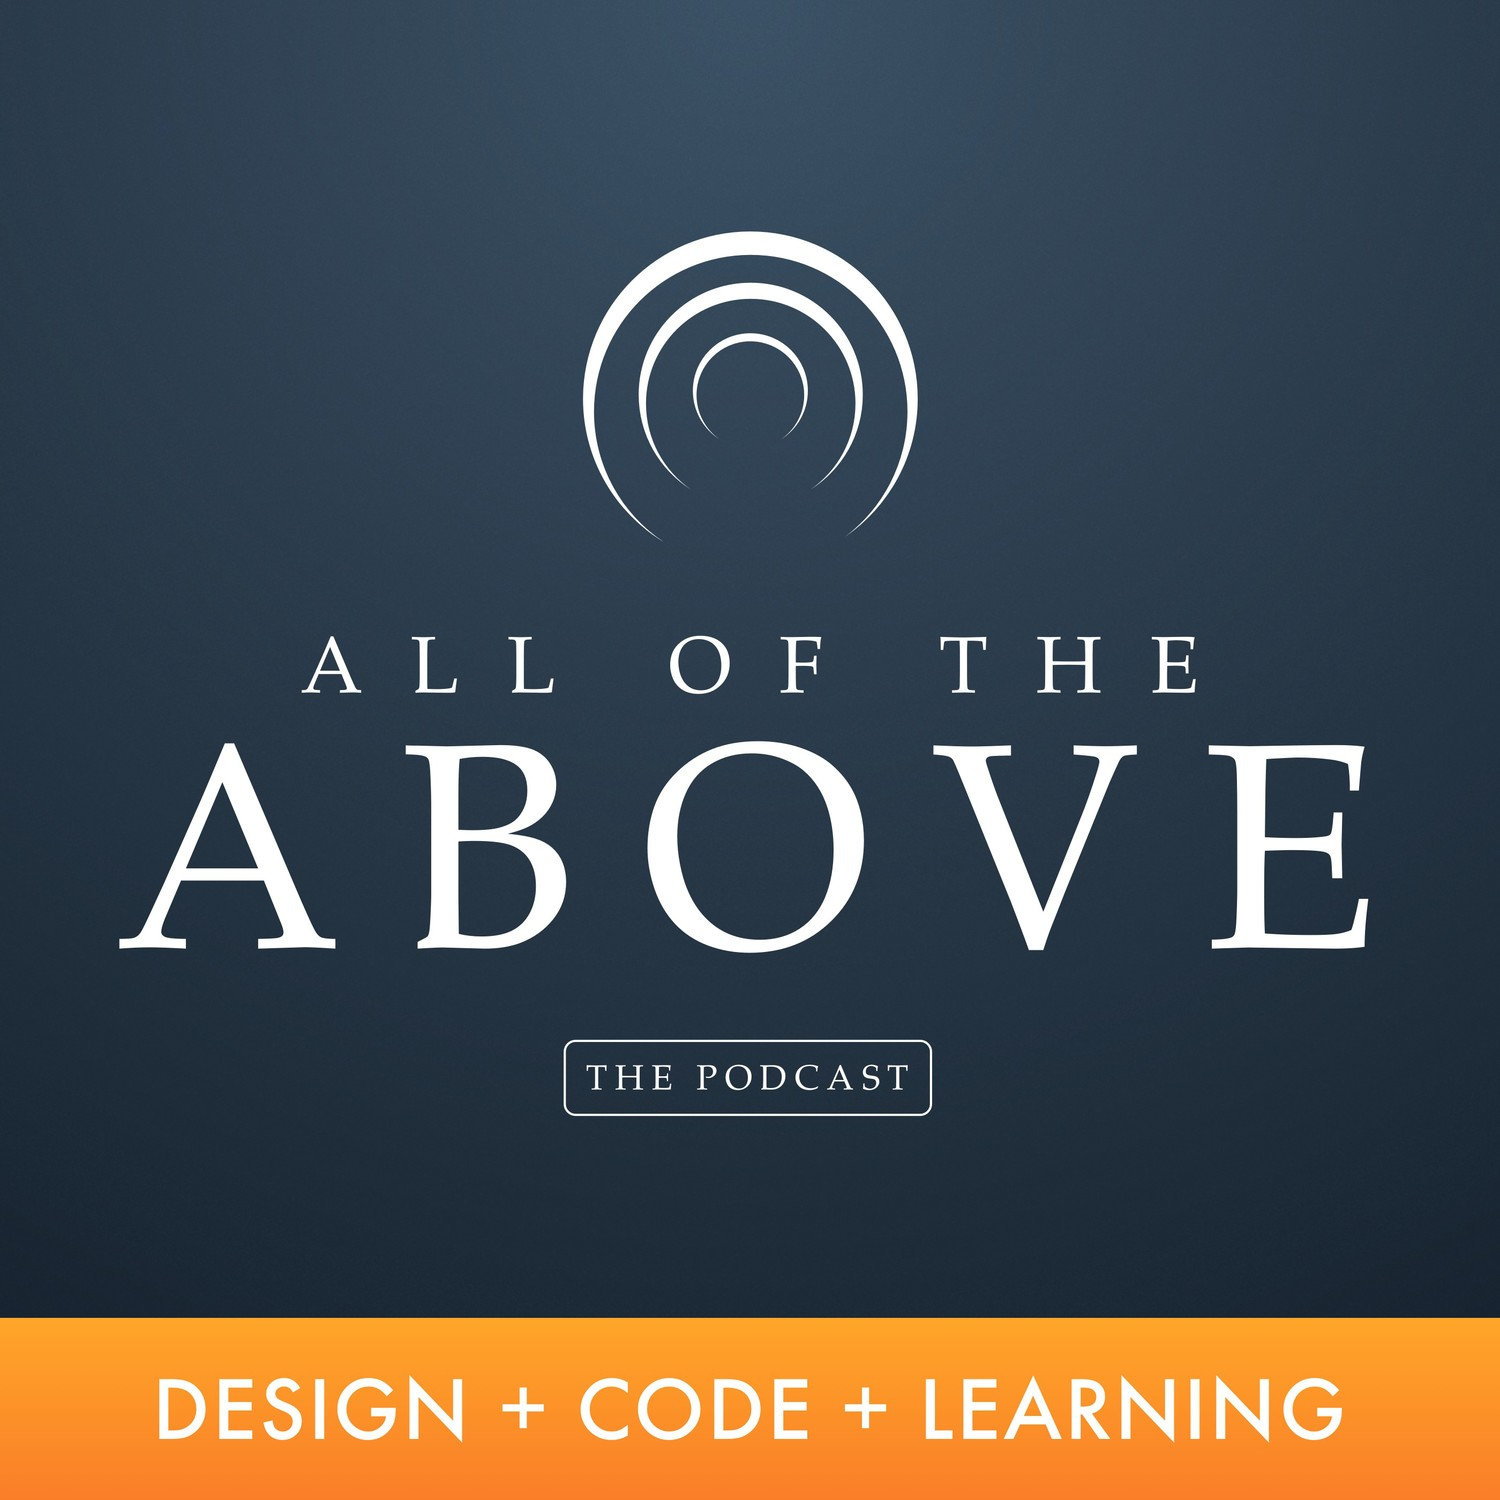 All of the Above: Design, Code, and Learning